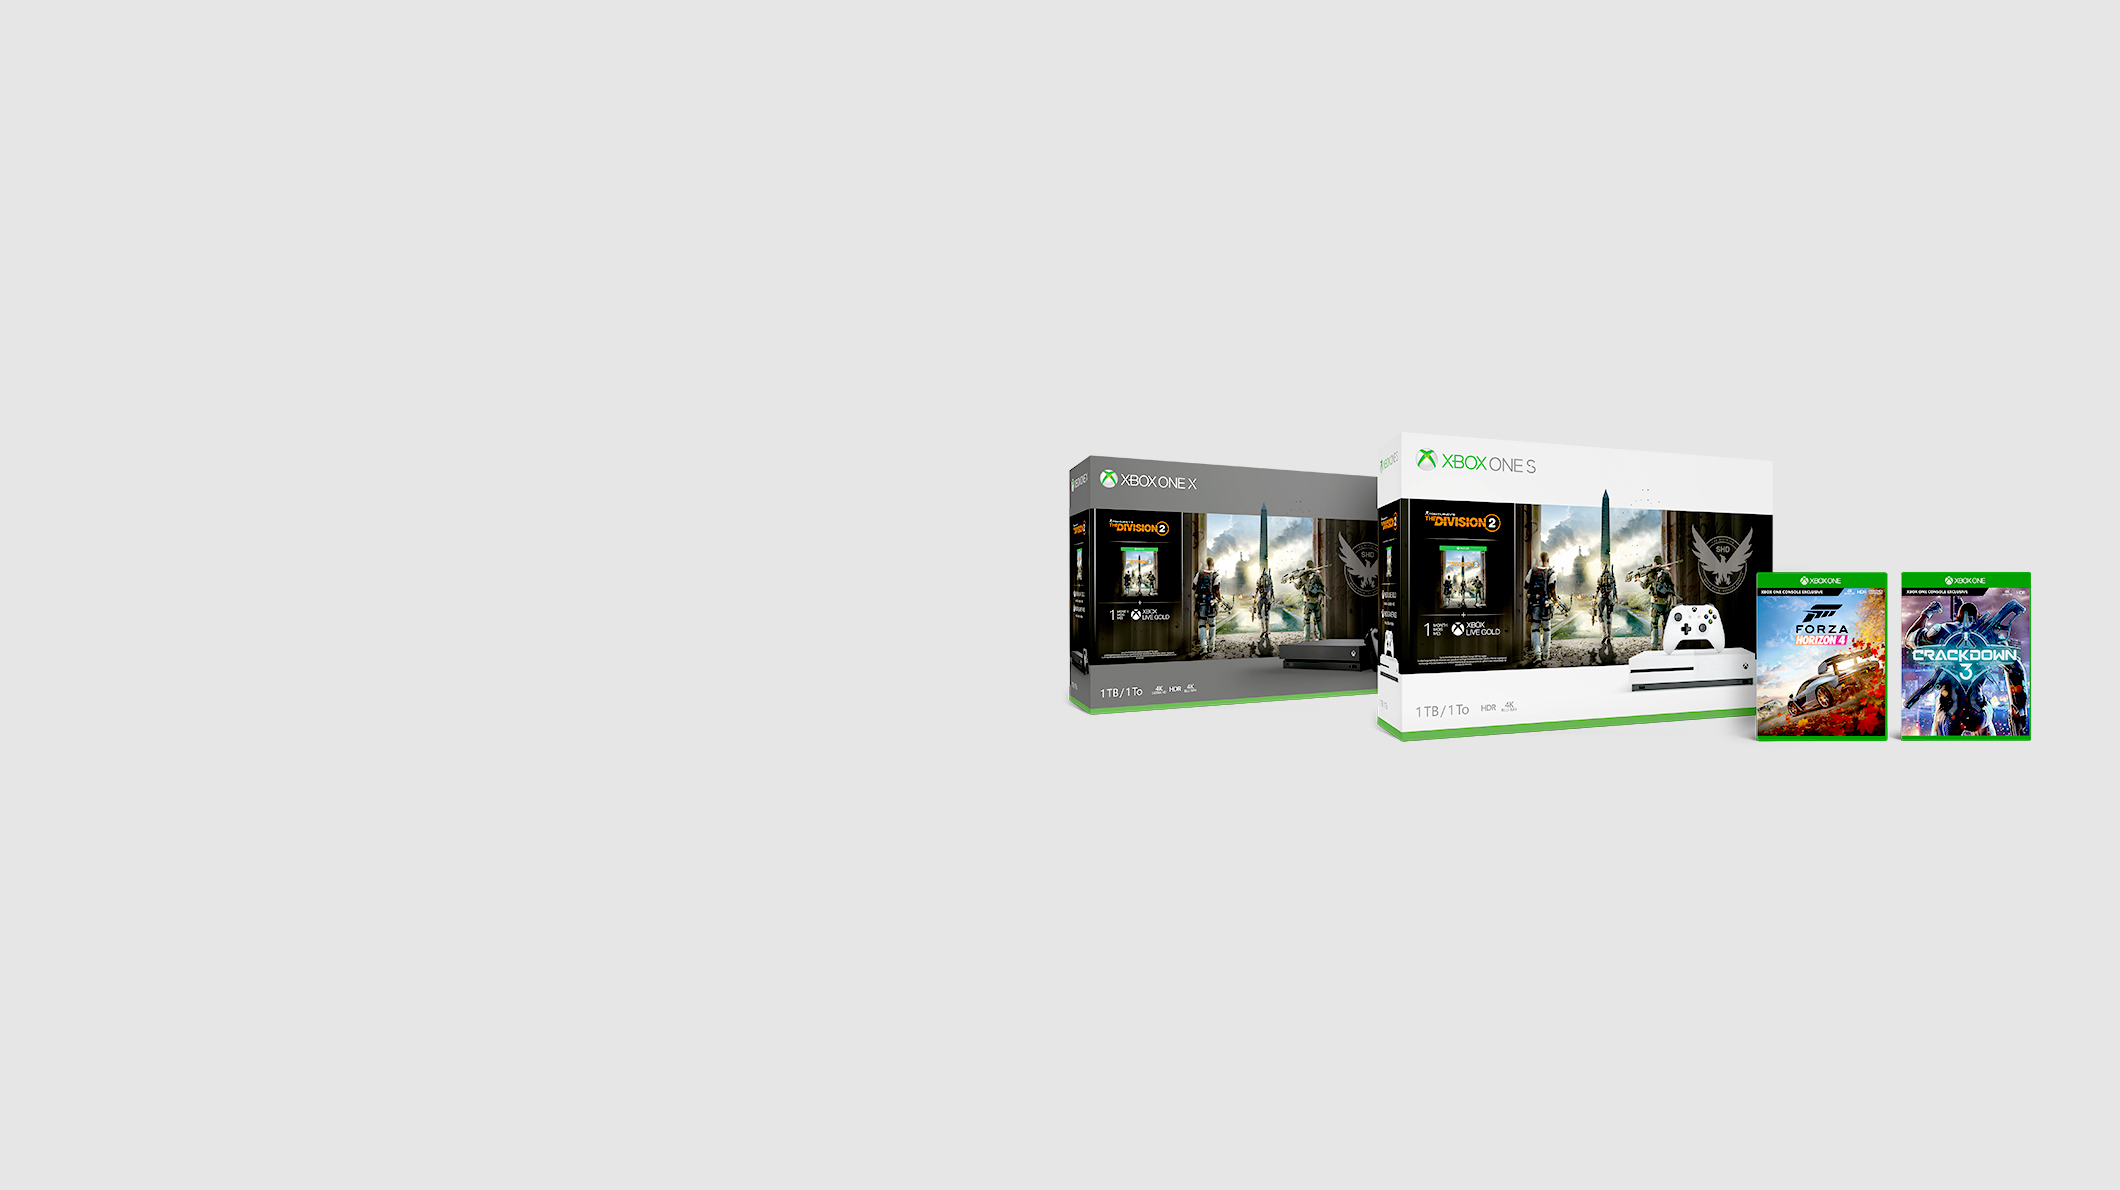 Xbox One Tom Clancy's The Division 2 Bundles, Forza Horizon 4 game, Crackdown 3 game